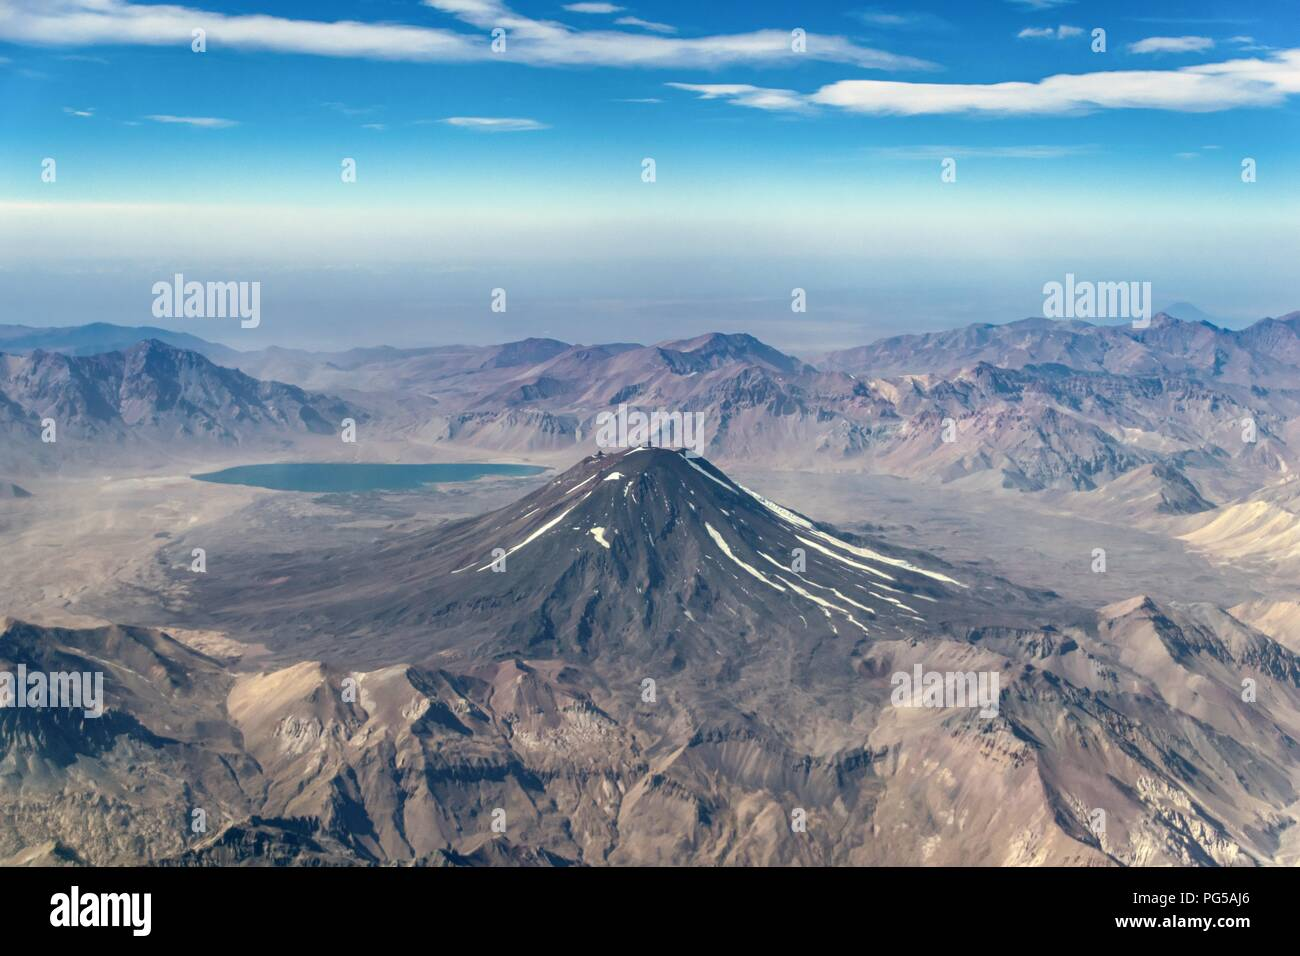 Overflying the 'Maipo' vulcano on our way from Chile to Argentina. - Stock Image